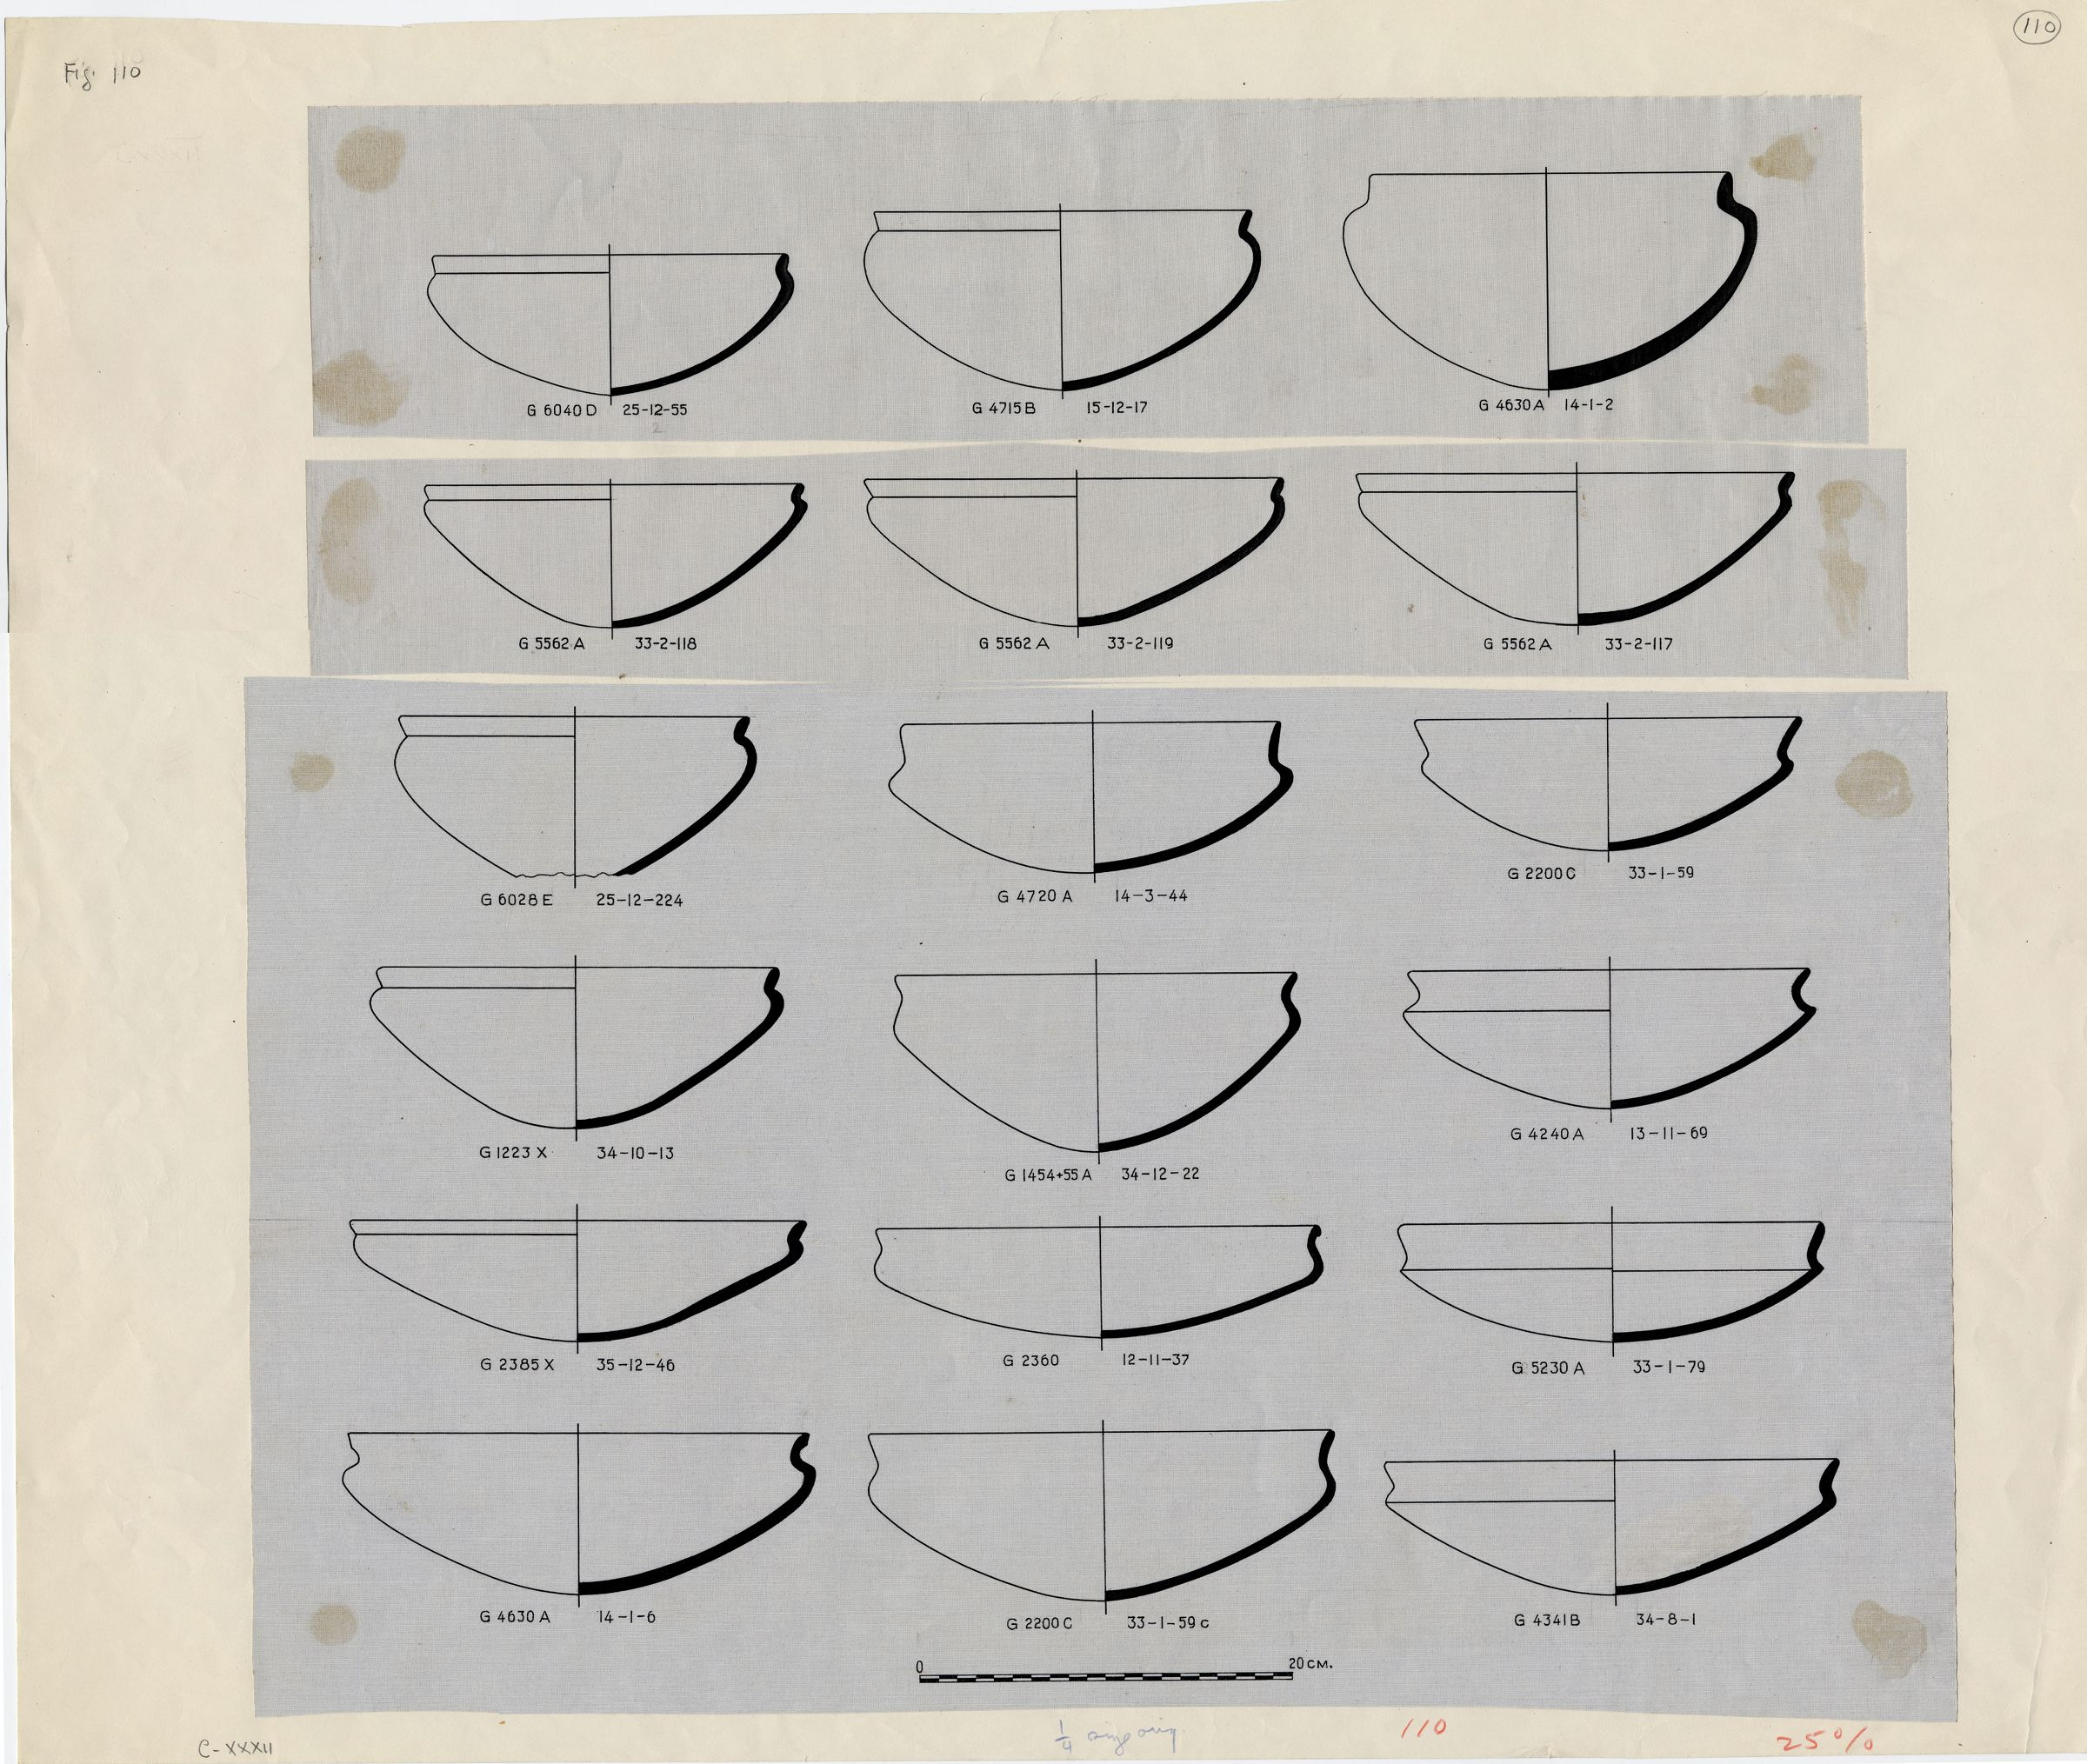 Drawings: Pottery bowls with recurved rims from G 1223-Annex, G 1454+1455, G 2360, G 2385, G 4240, G 4341 , G 4630, G 4715, G 4720, G 5080, G 5230, G 5562, G 6028, G 6040